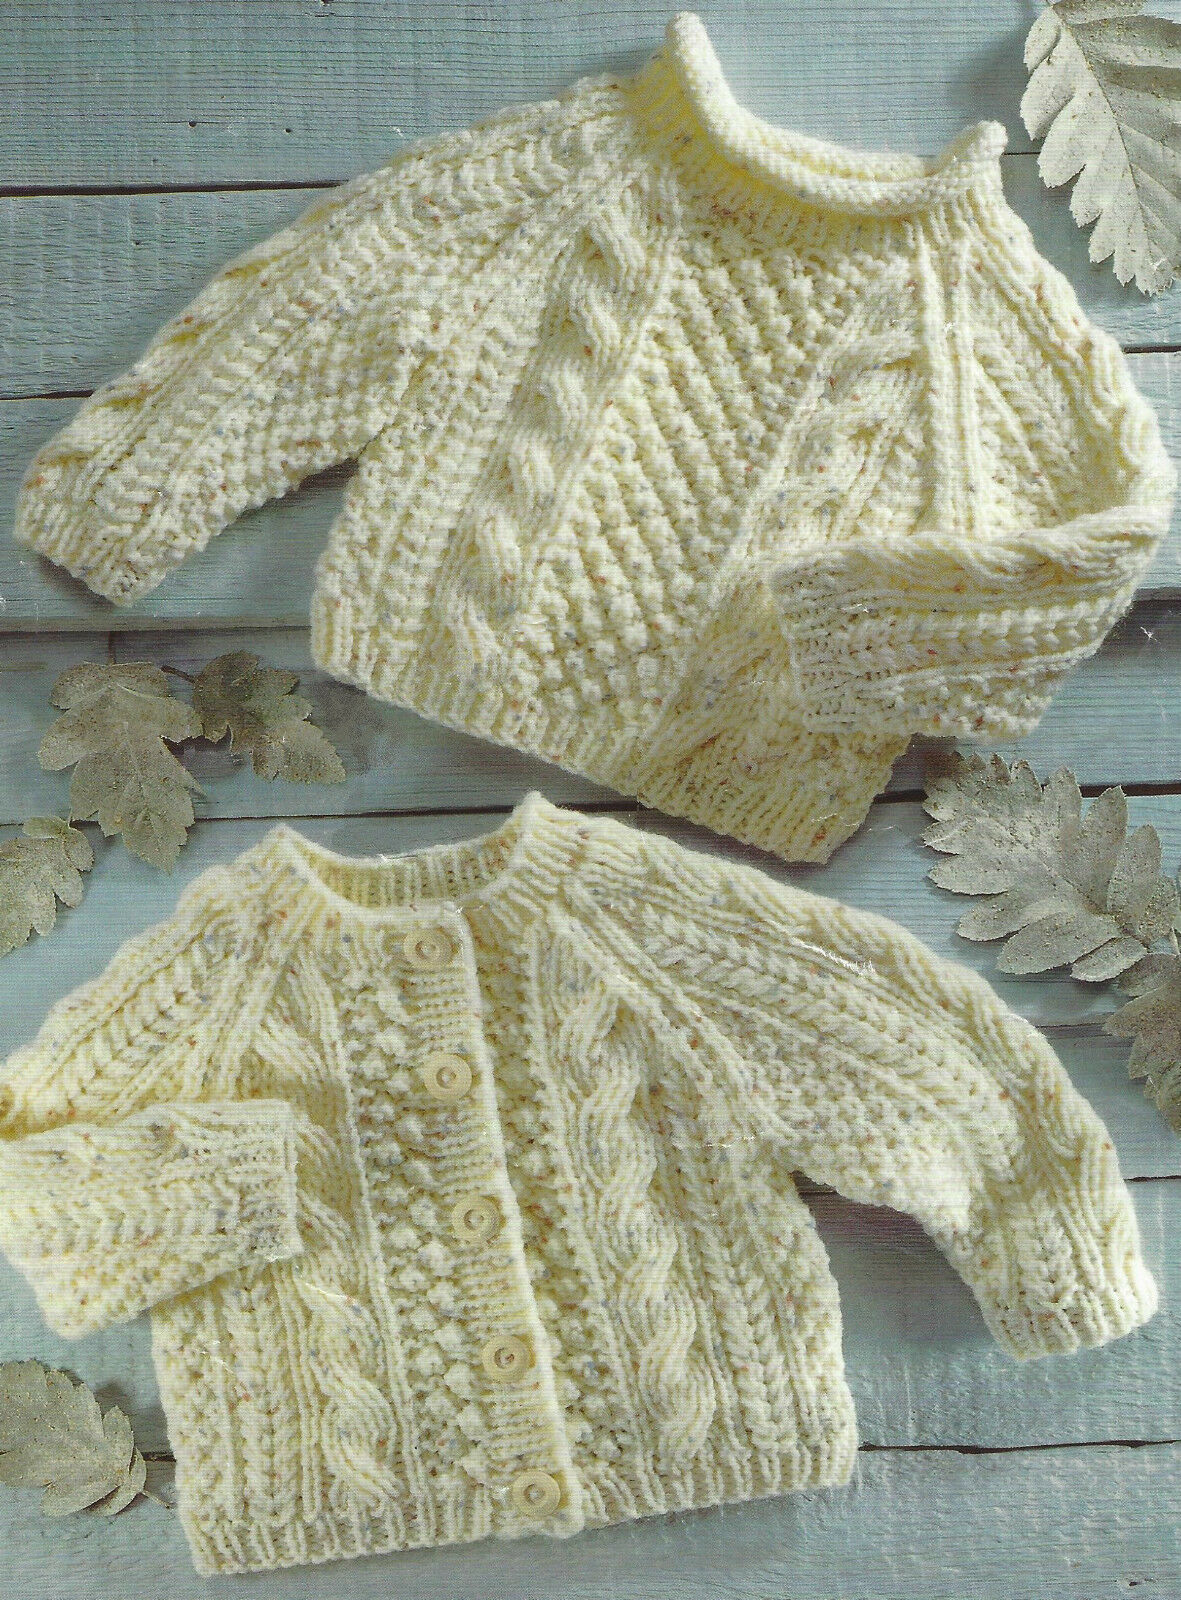 Free Knitting Patterns For Babies In Aran : Aran Knitting Pattern Cardigan Sweater with cables Baby Girls Boys 16-26